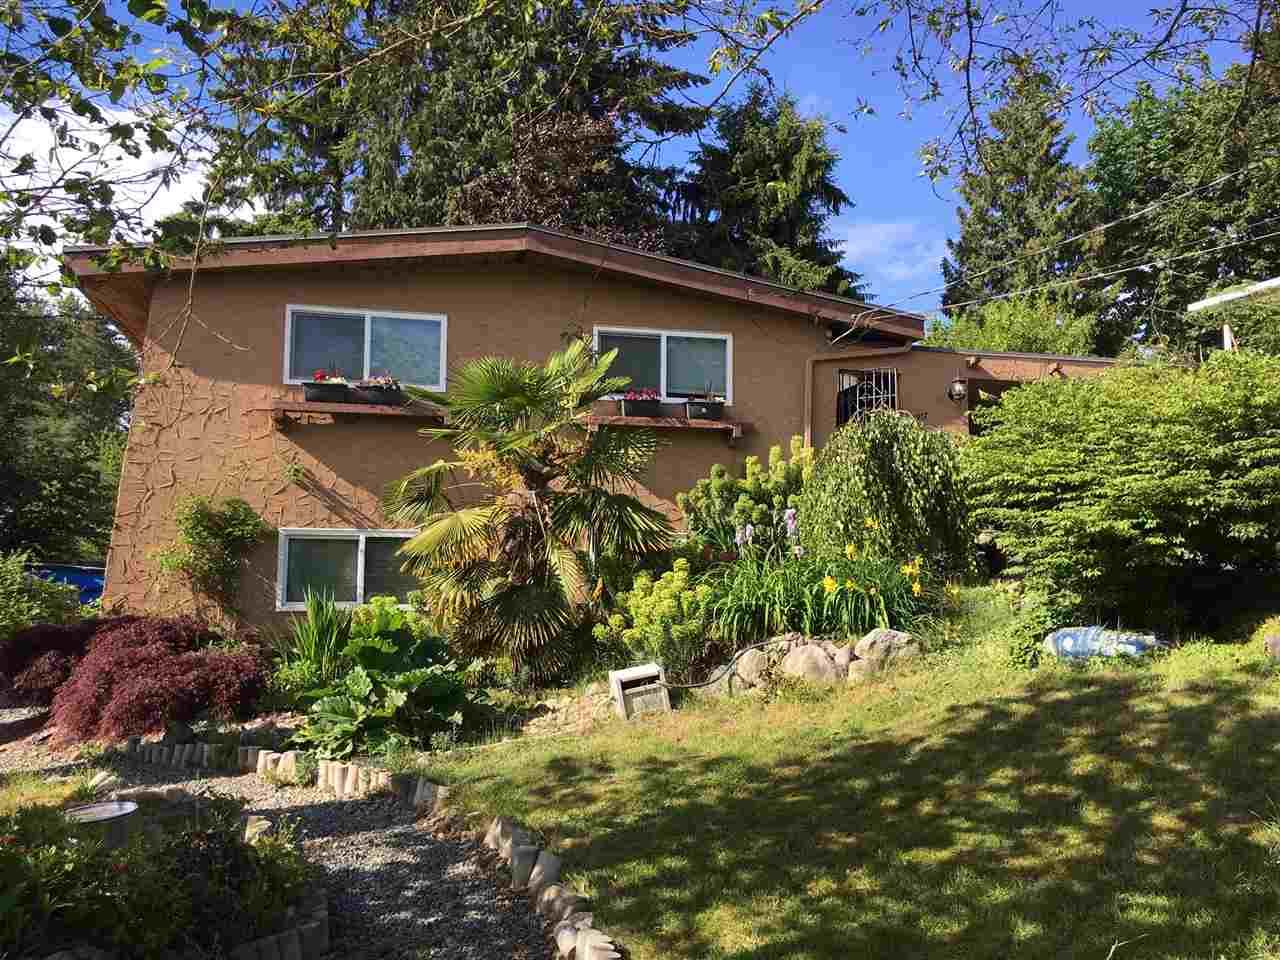 Main Photo: 1917 WILTSHIRE Avenue in Coquitlam: Cape Horn House for sale : MLS®# R2371481